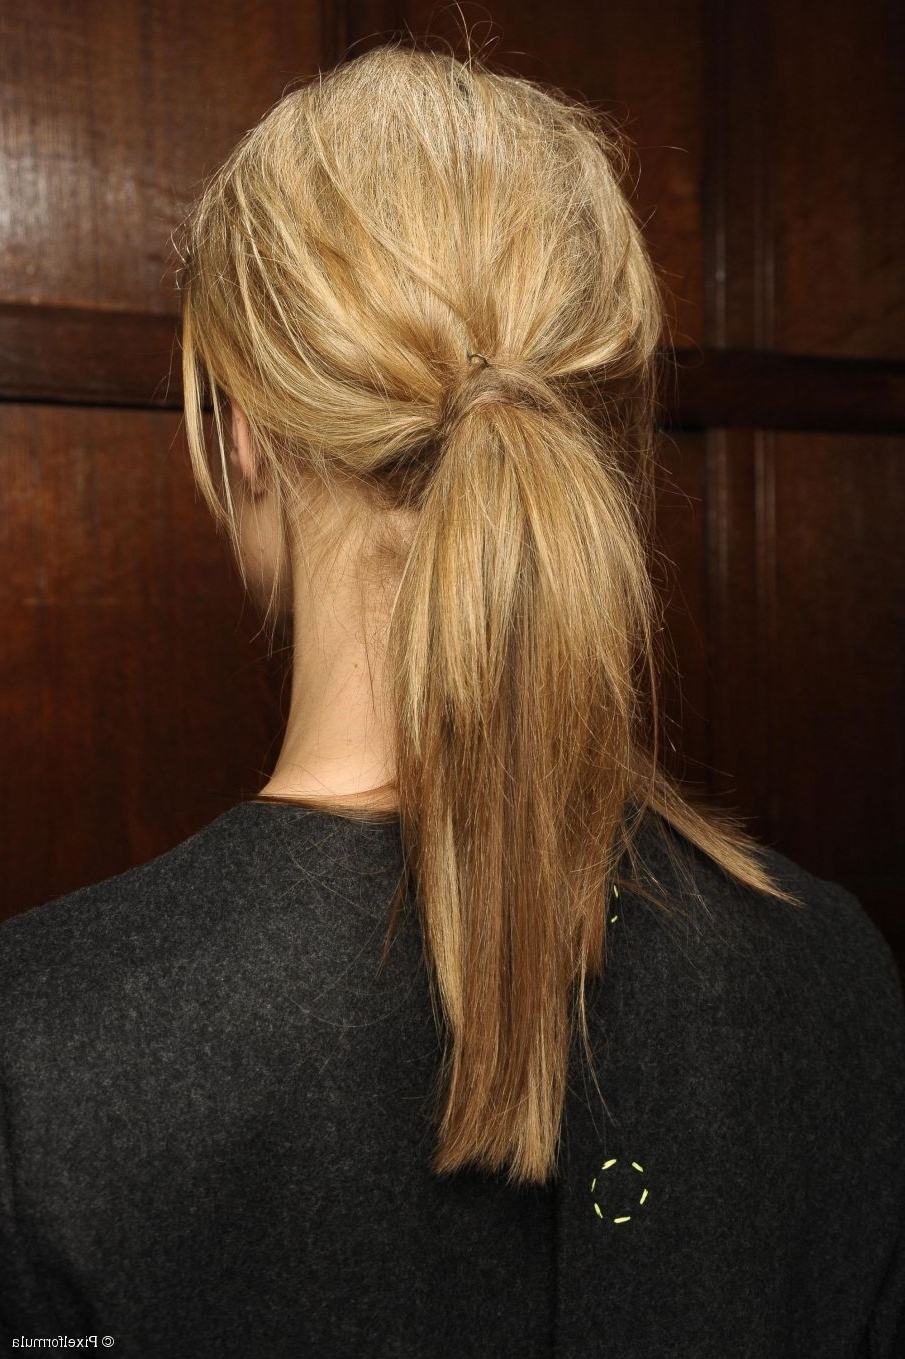 New Ponytail Hairstyles To Try & How To Get Them Regarding Famous Messy Waves Ponytail Hairstyles (View 12 of 20)